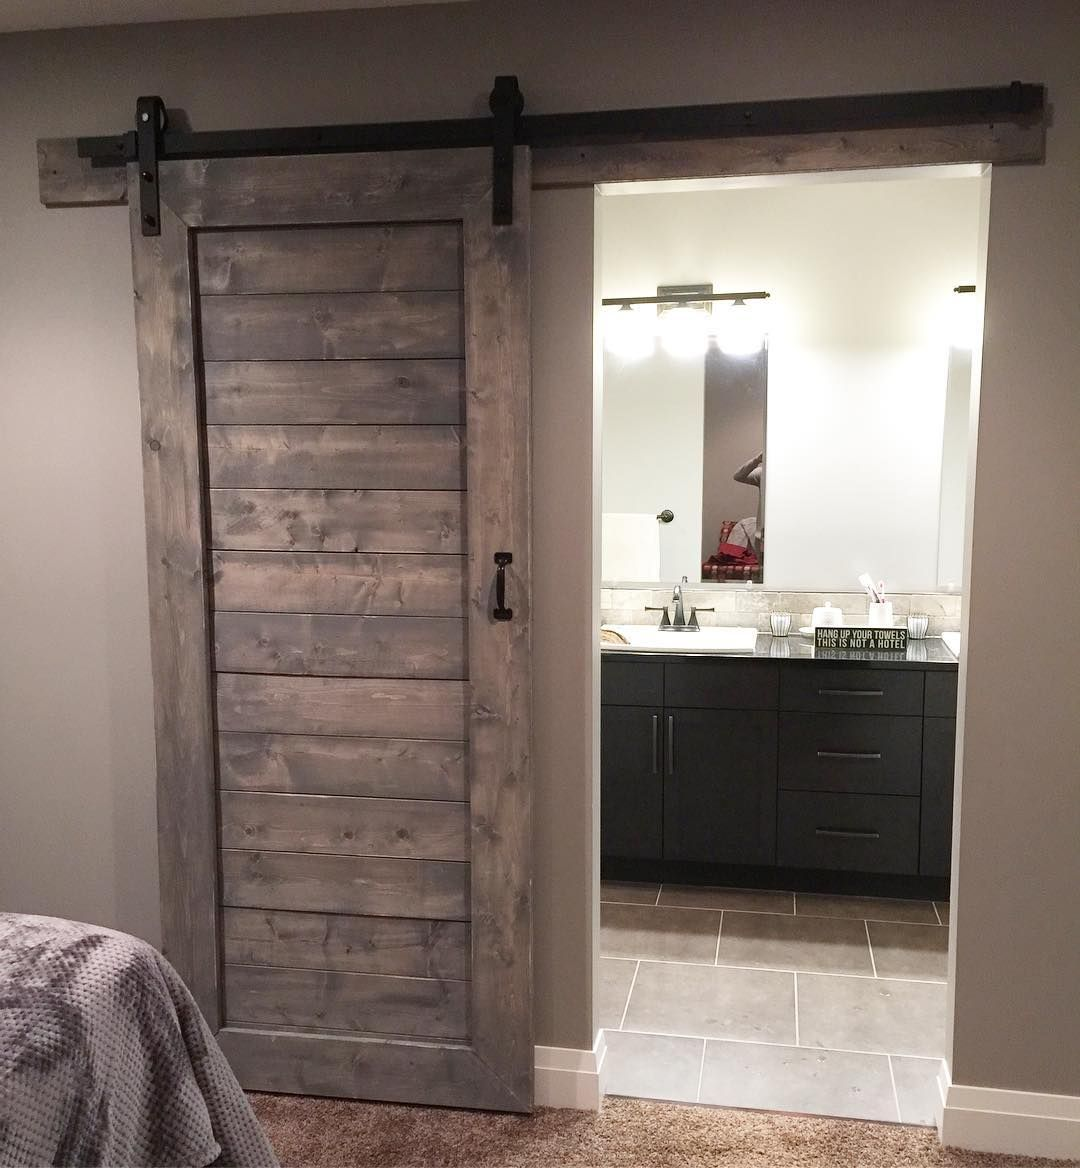 348 likes 22 comments timber gray design co for Barn door designs